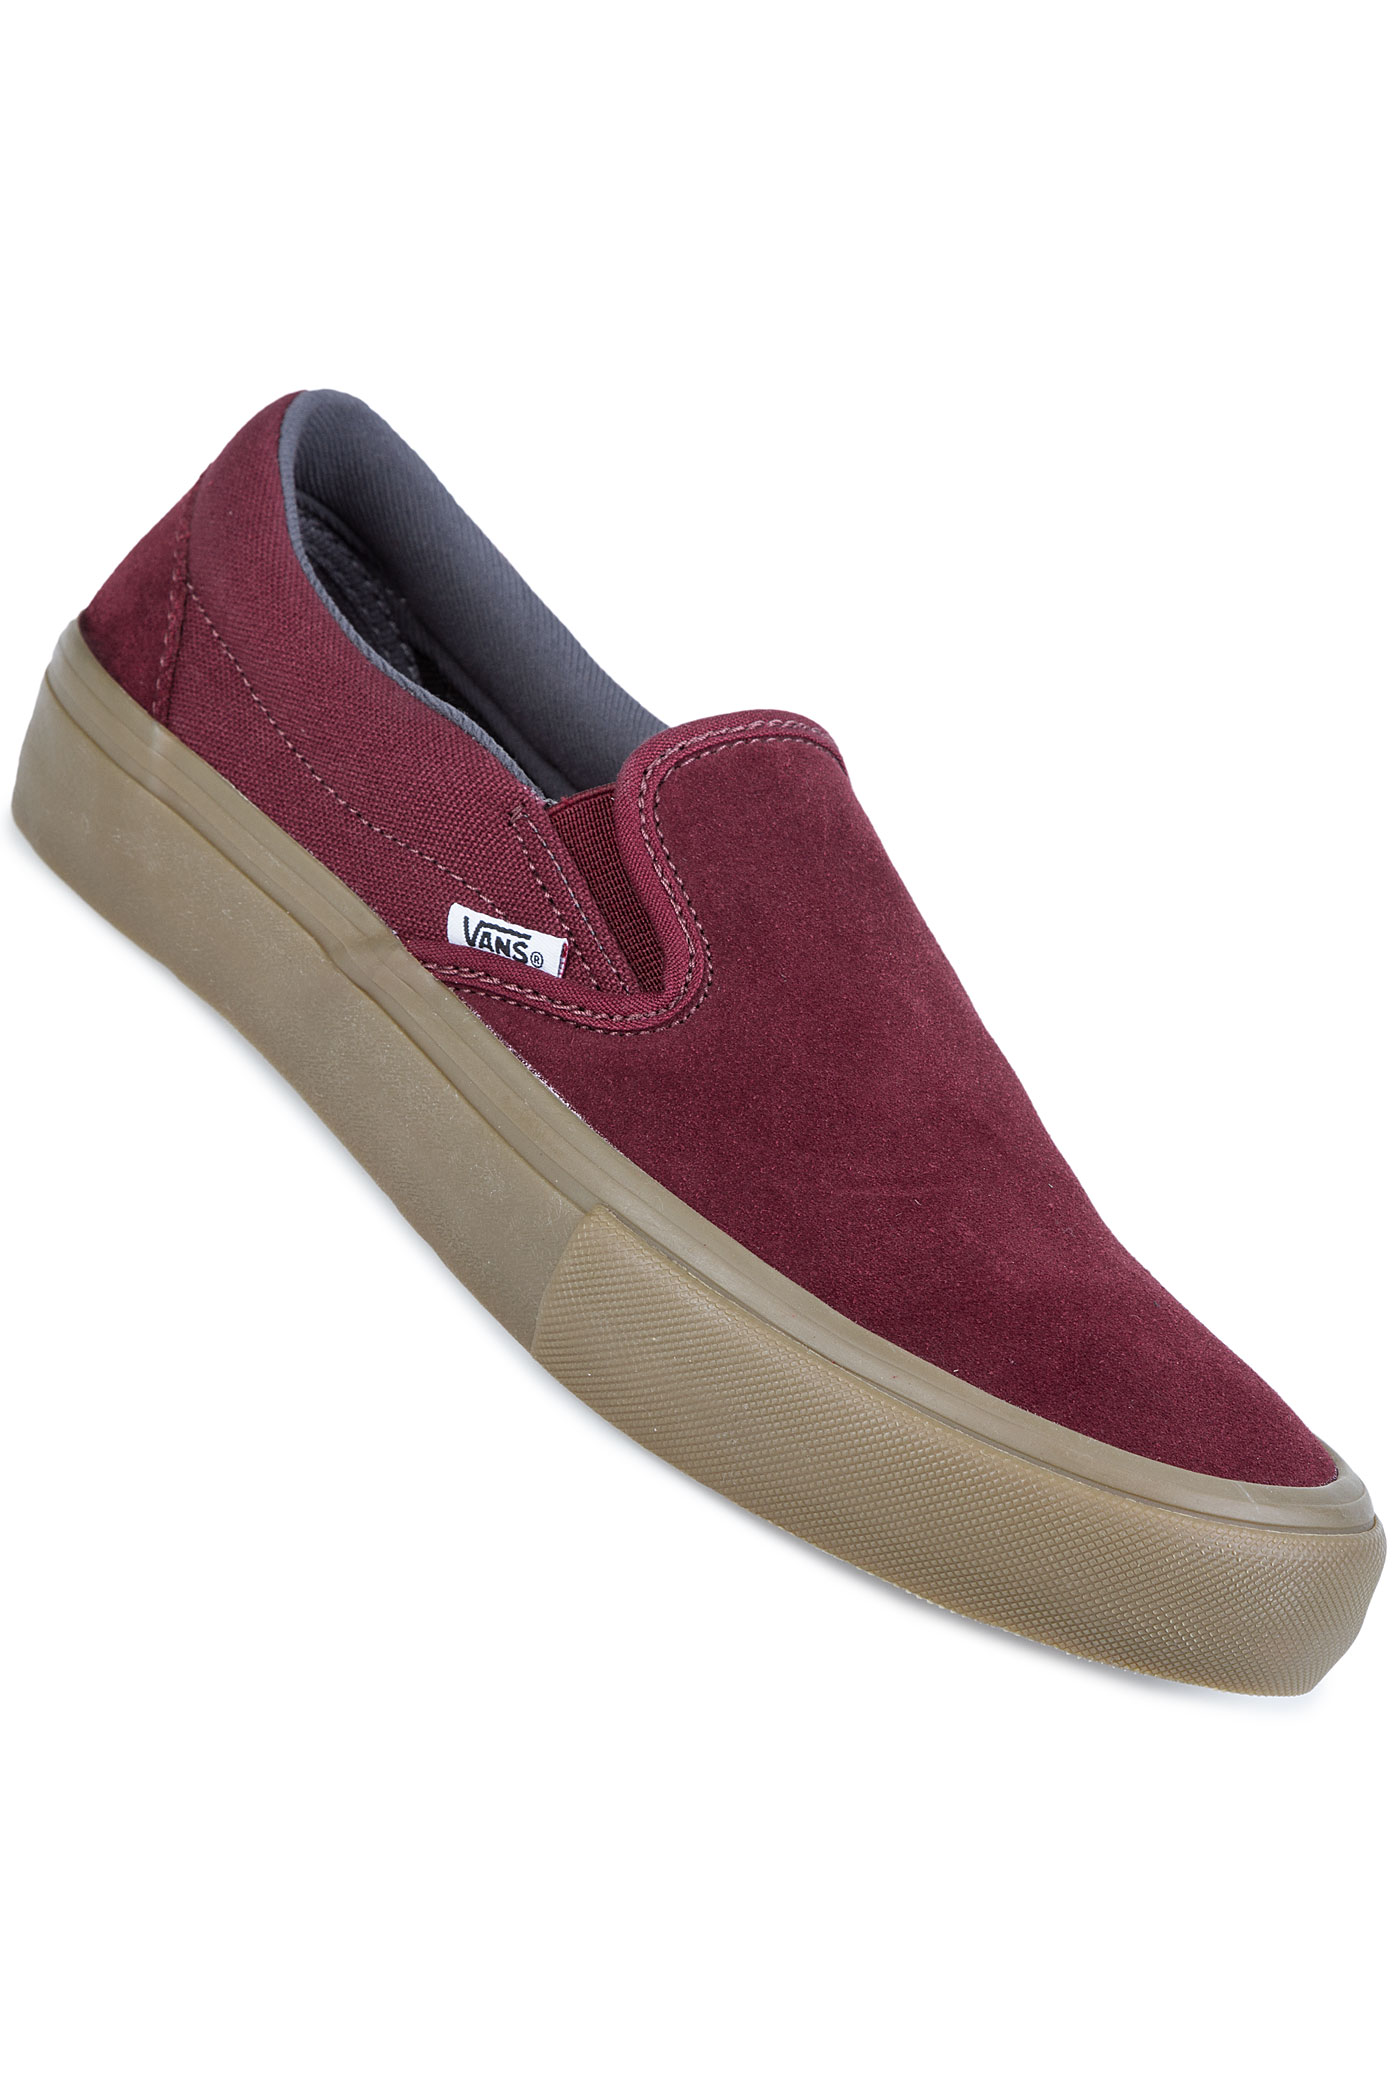 vans slip on pro chaussure port royal gum achetez sur skatedeluxe. Black Bedroom Furniture Sets. Home Design Ideas